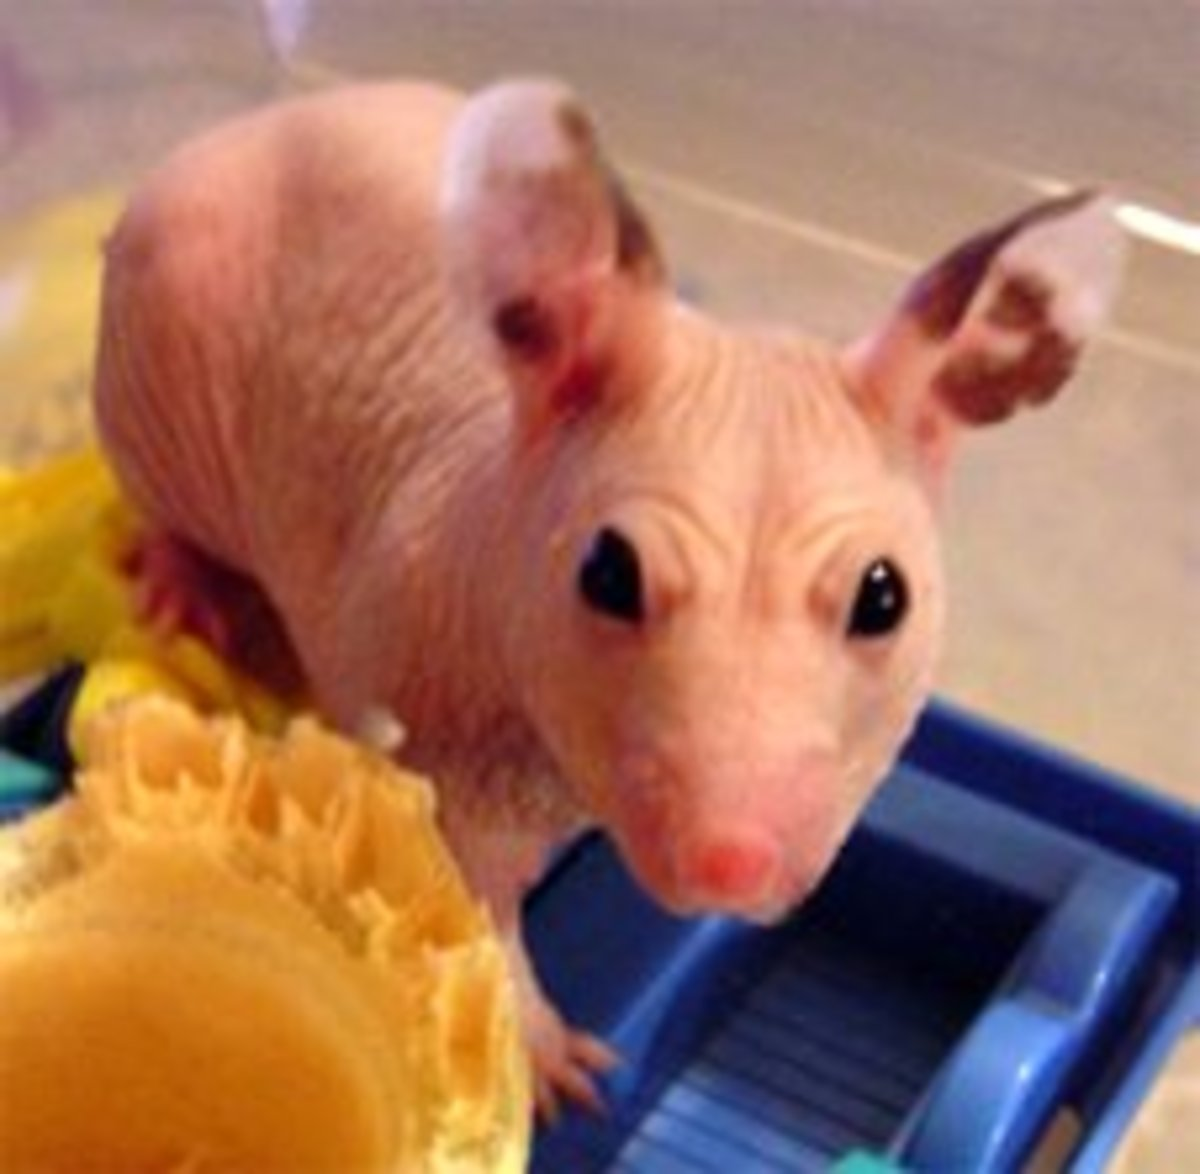 6 Hairless Animals That Will Freak You Out!